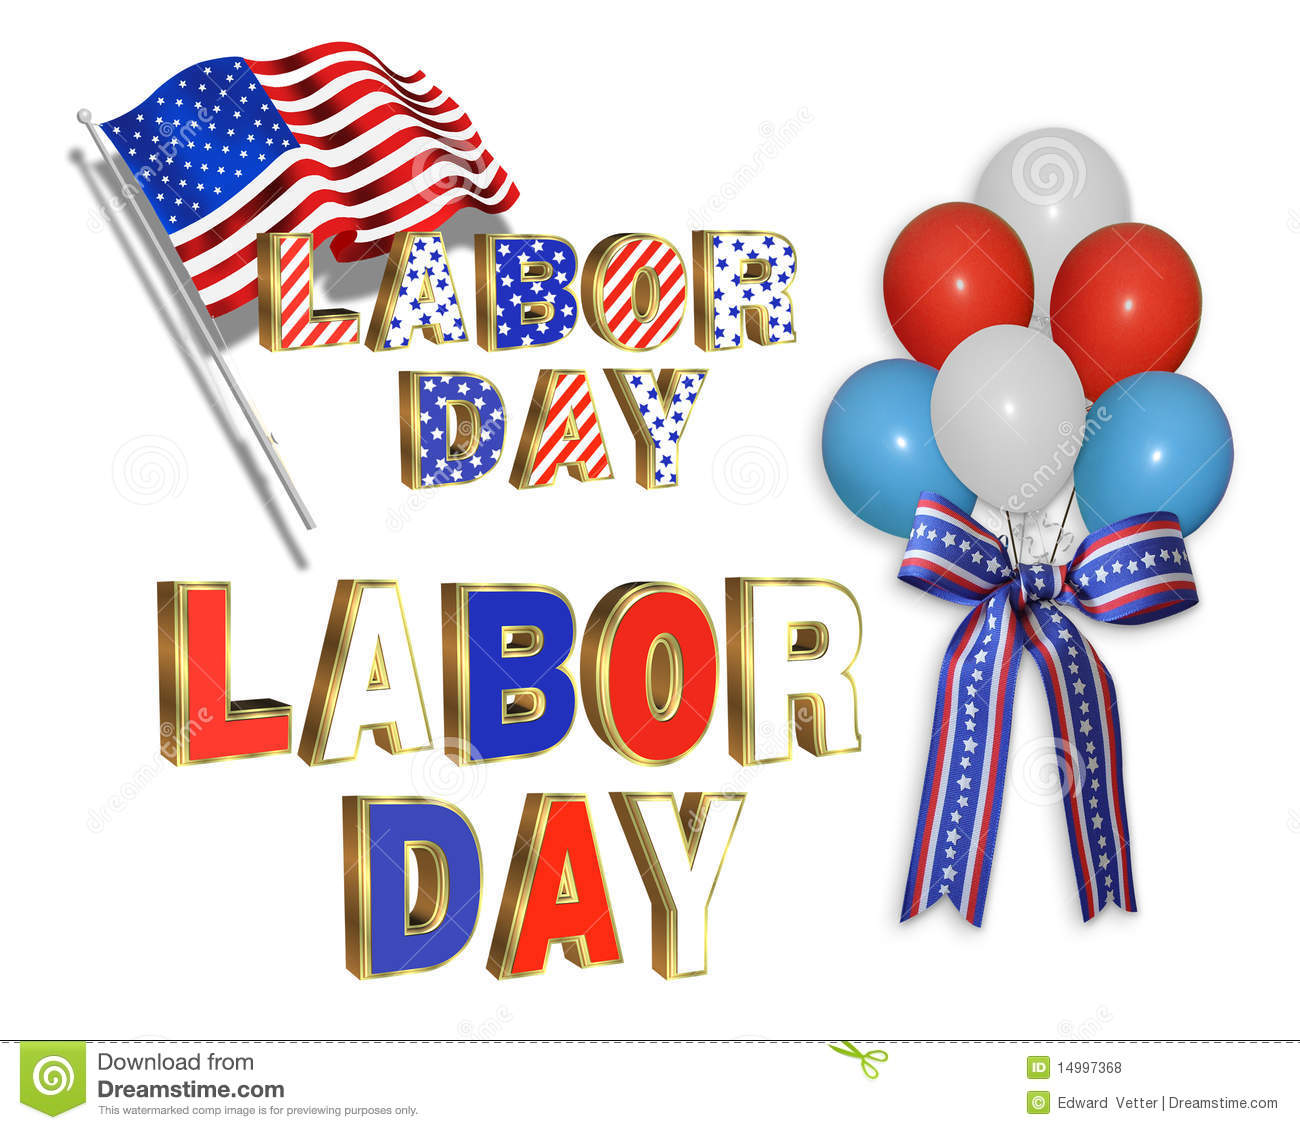 Labor Day clip art .-Labor Day clip art .-16